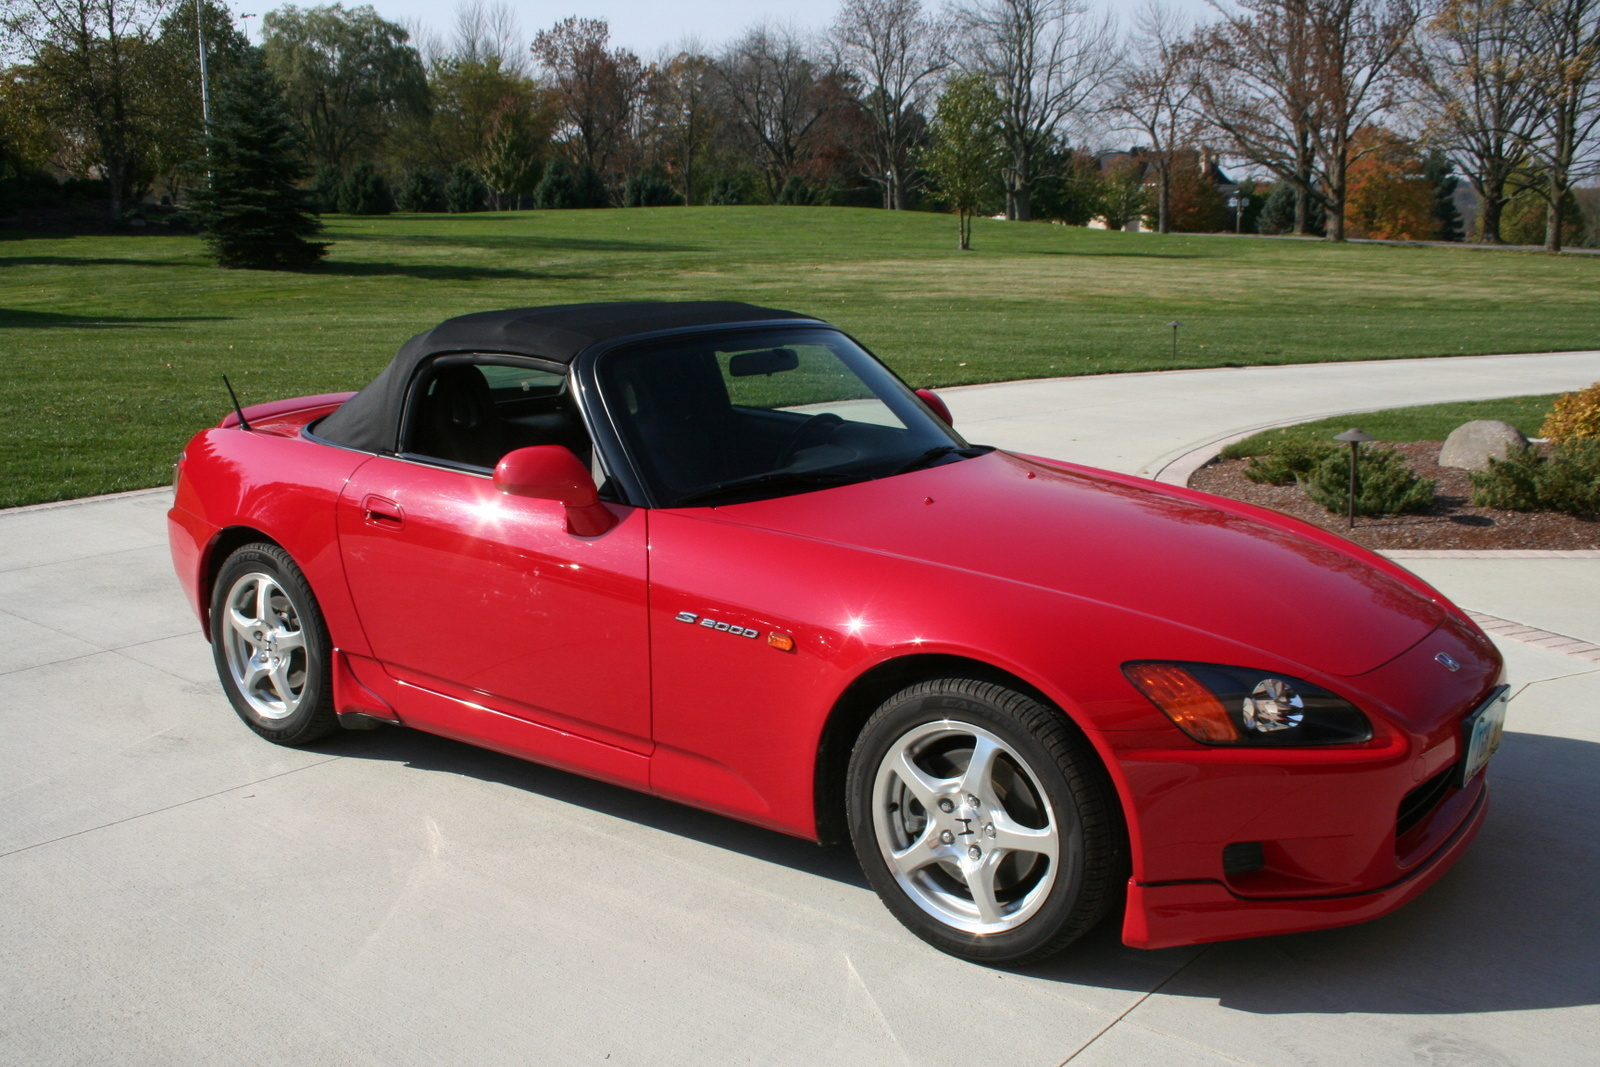 how do I put my pre-owned Honda S2000 on your web site